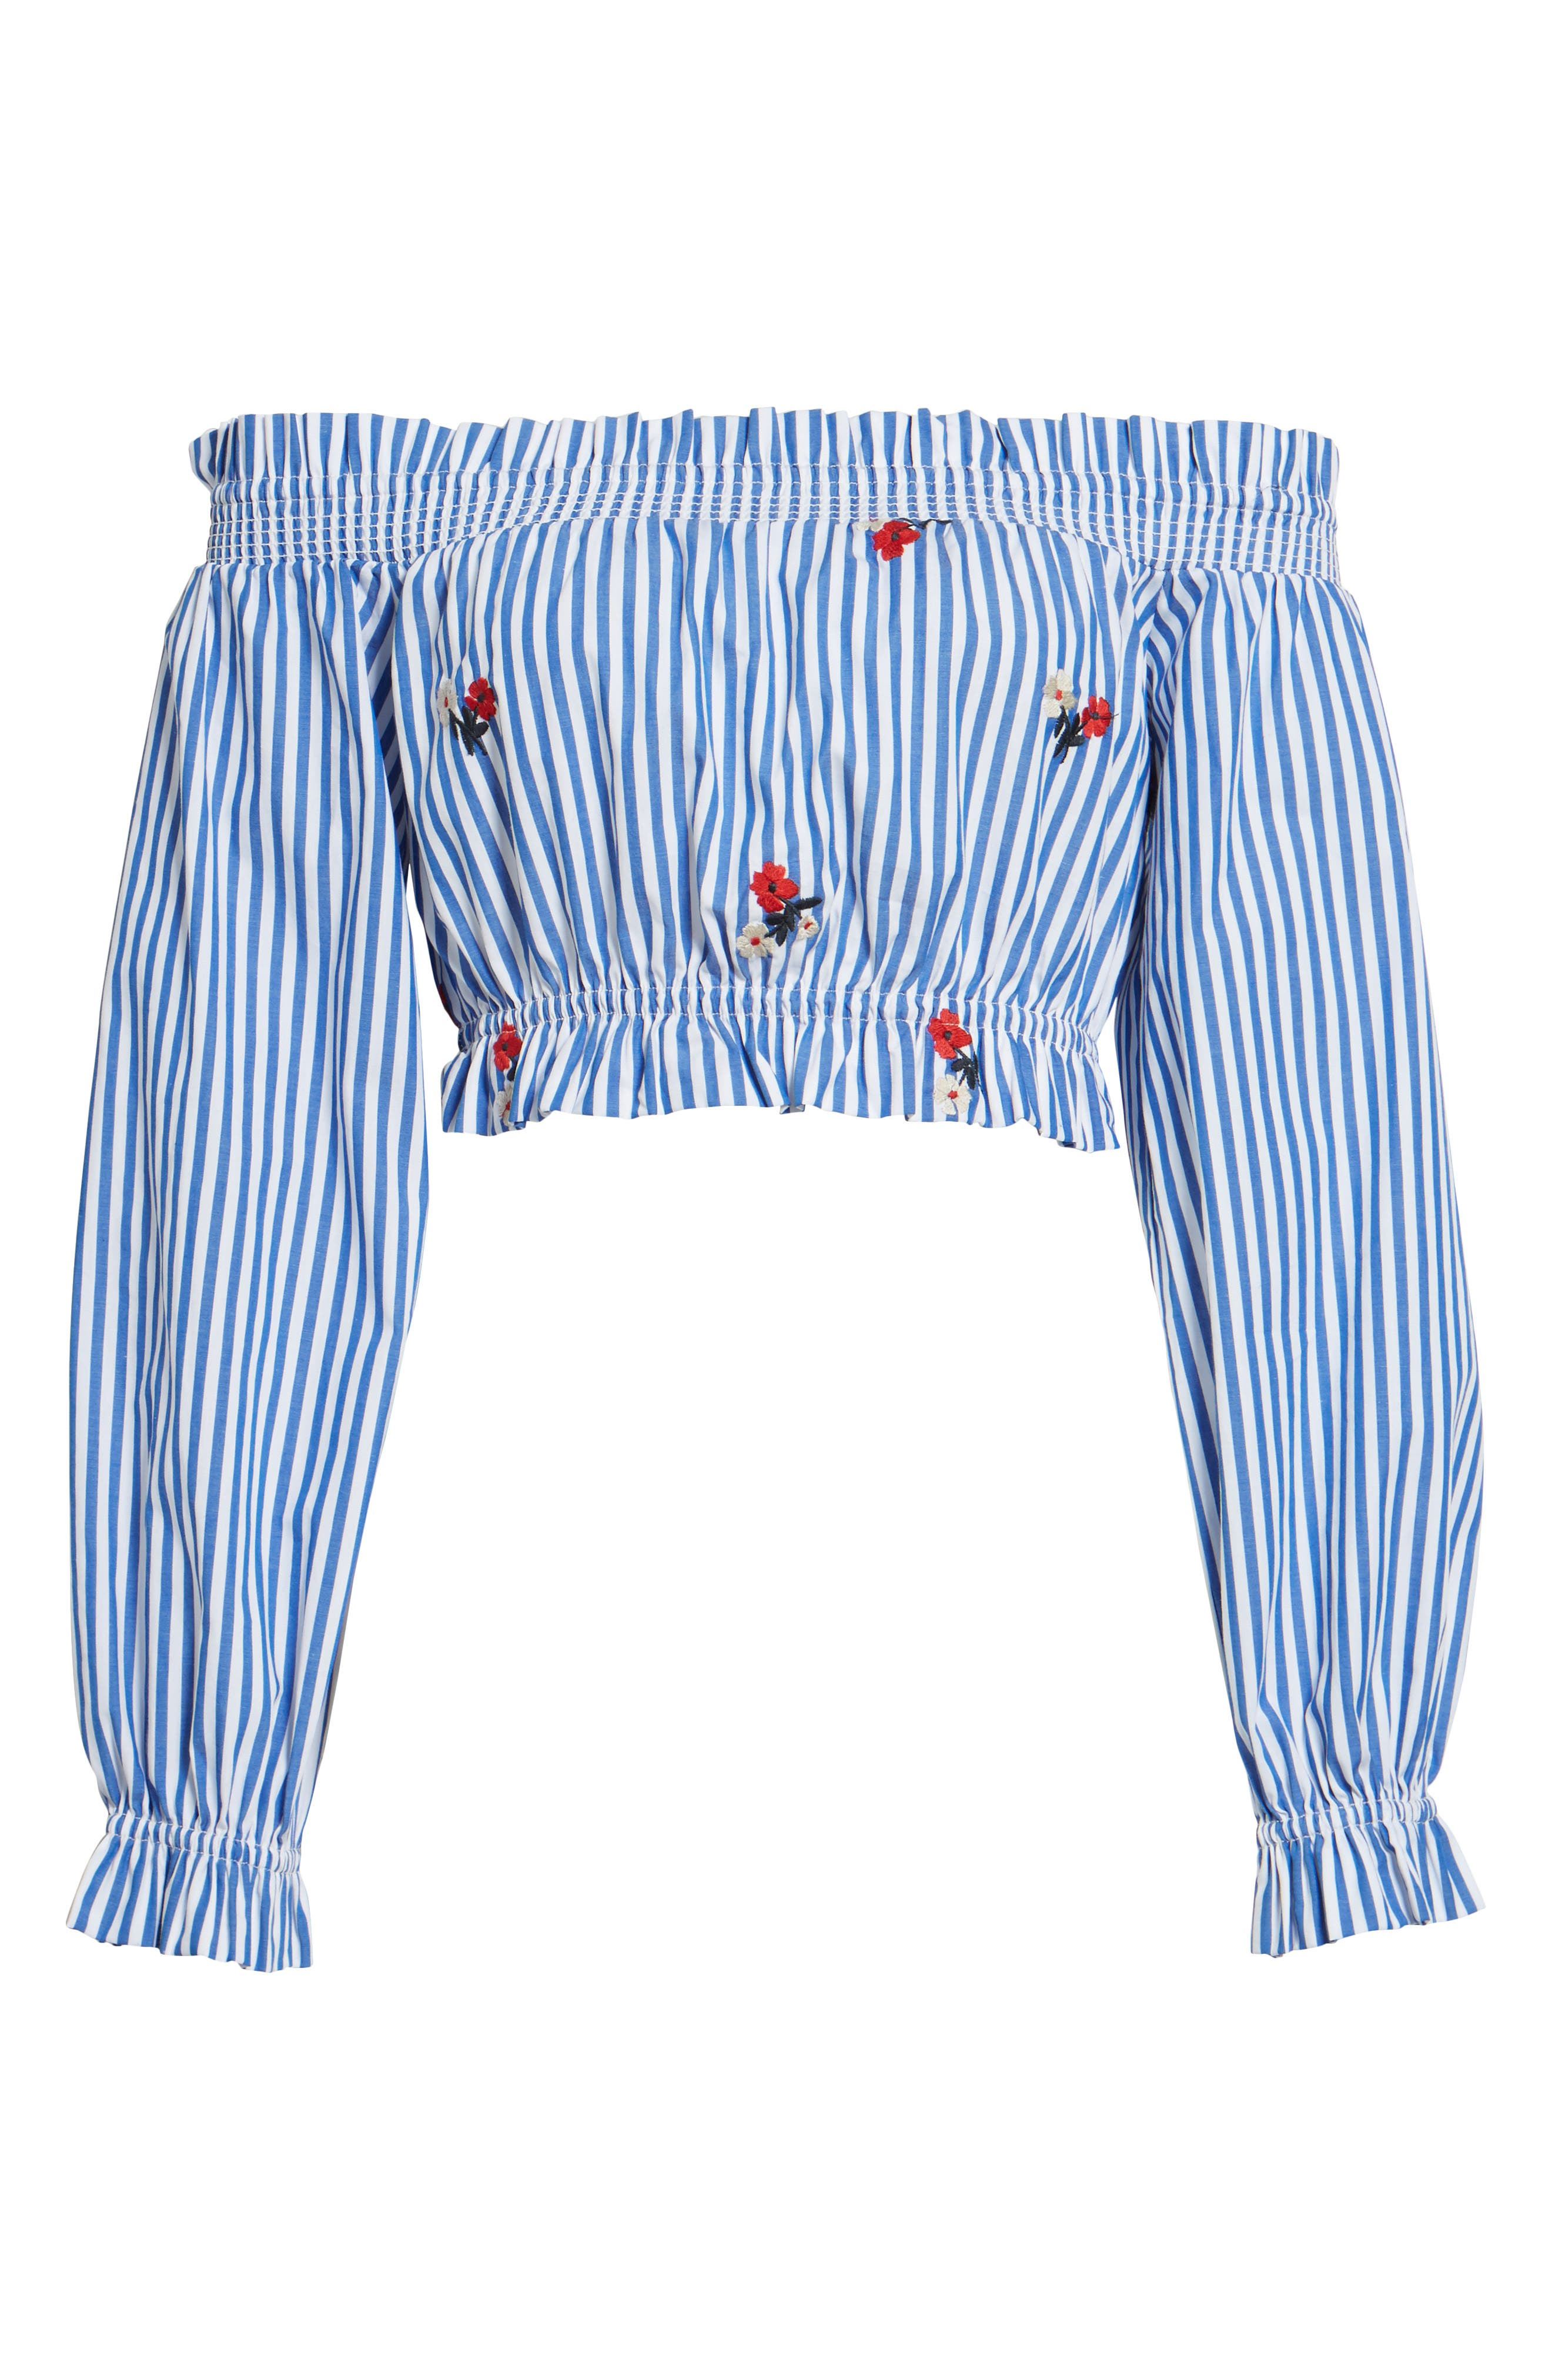 Chloe + Katie Embroidered Off the Shoulder Crop Top,                             Alternate thumbnail 6, color,                             Blue/ White Stripe